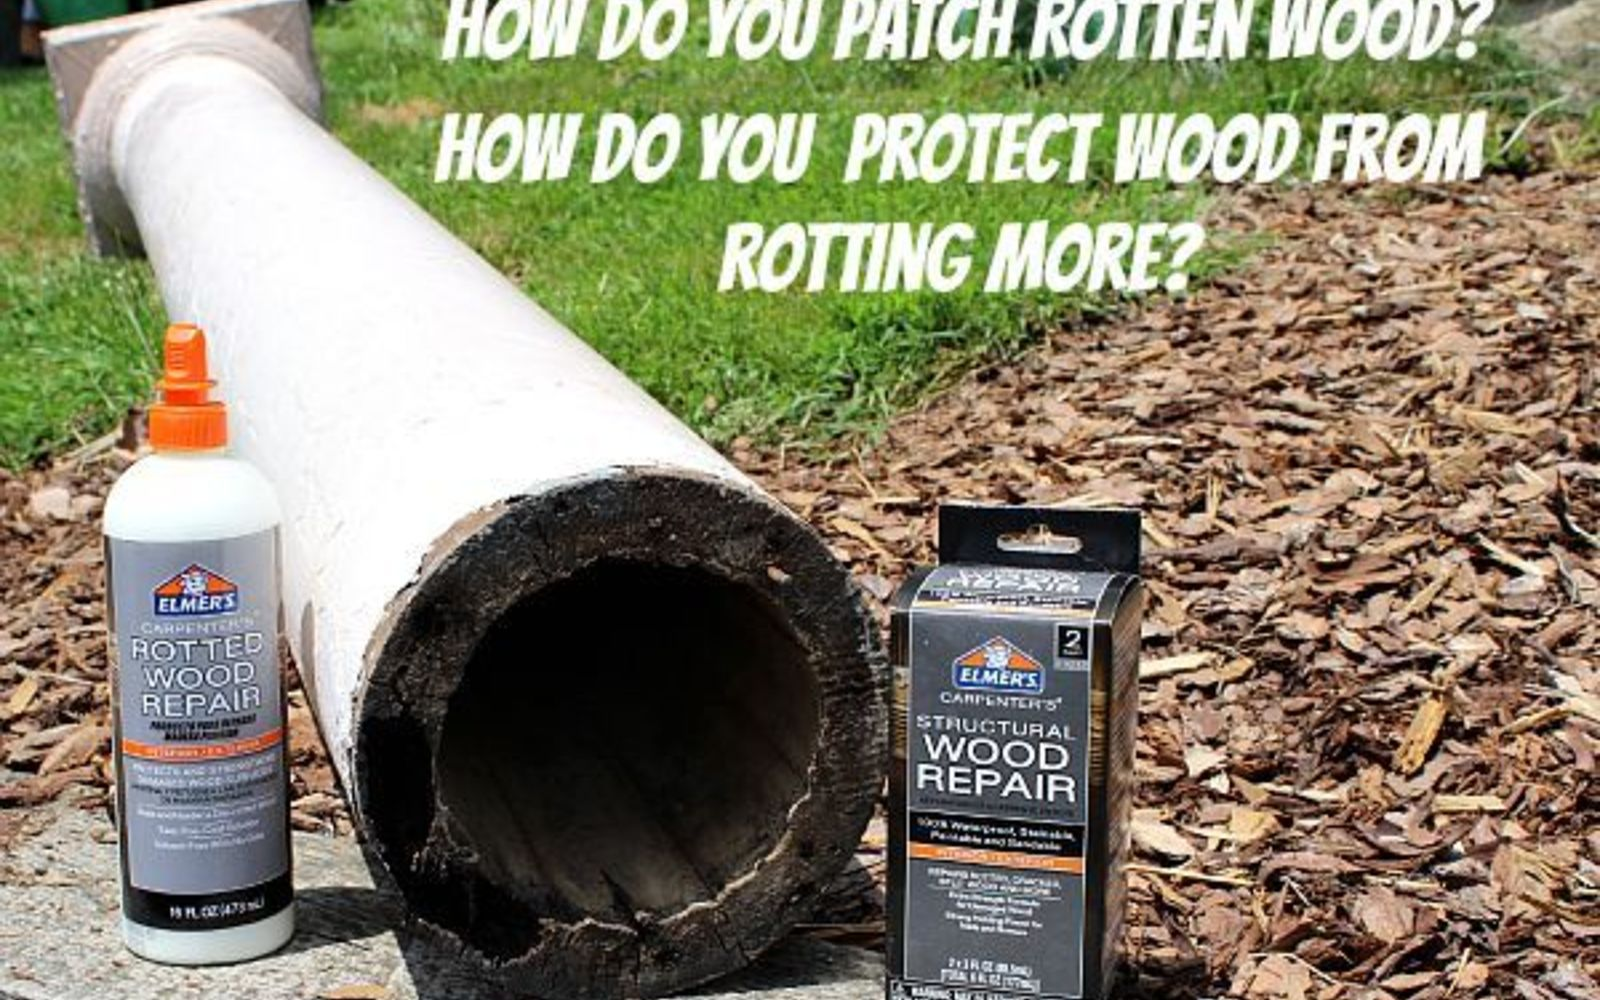 s 30 tricks to help you fix the wood in your home, Fix Rotten Wood With Elmer s Glue